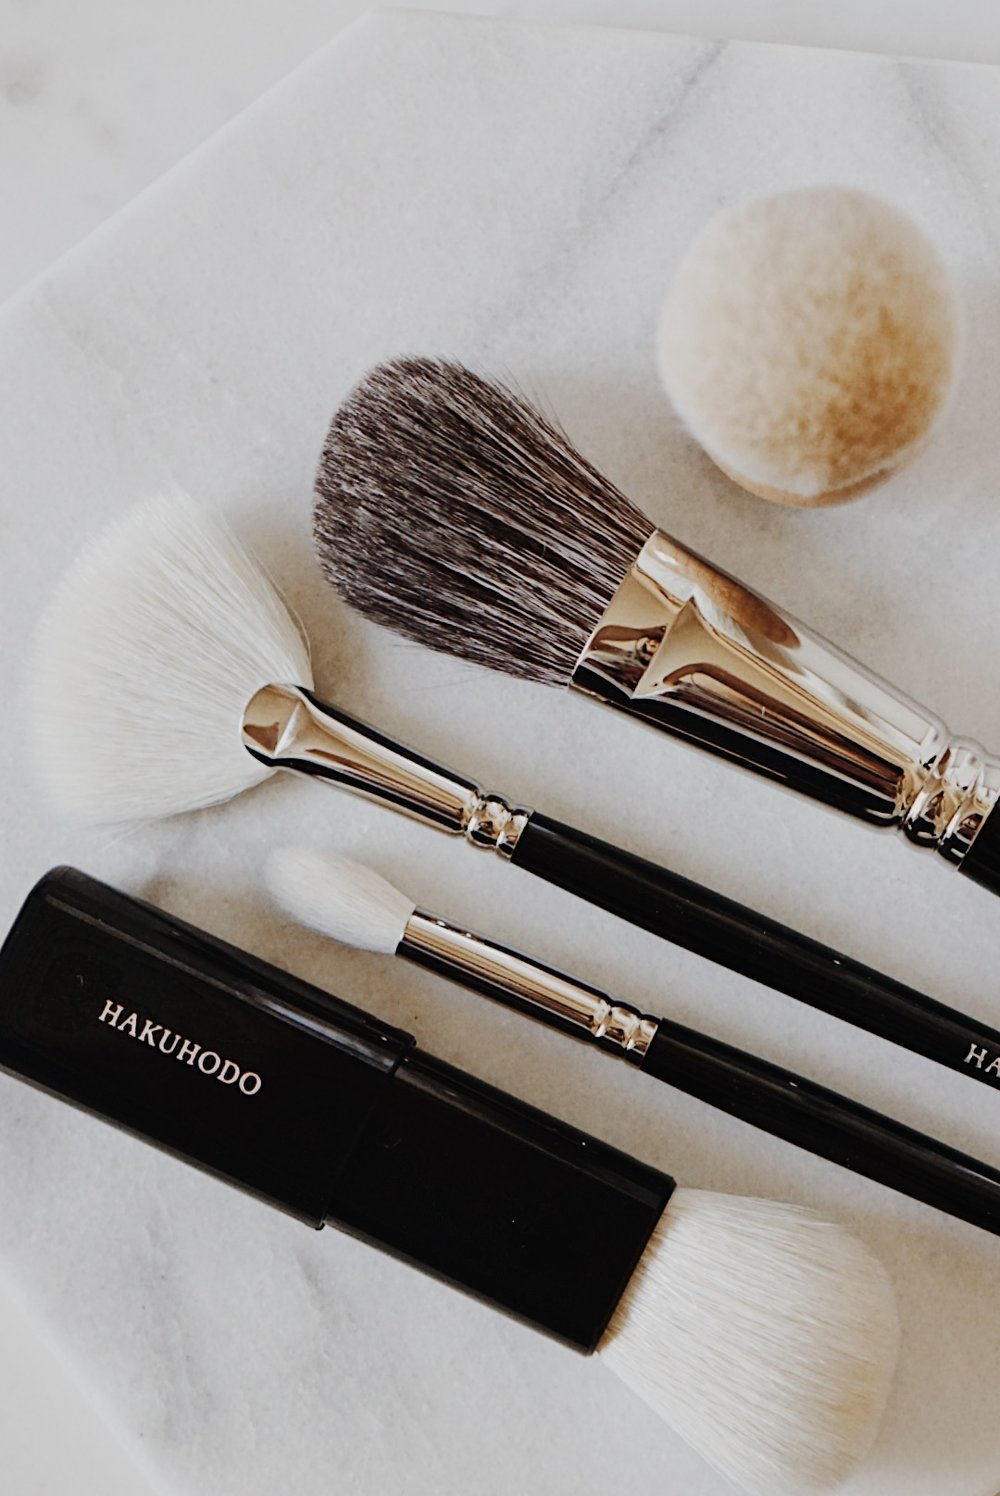 Hakuhodo Brushes J5522 J4004 Powdered Angle Brush Slide Face Angled Maple Kinoko Brush